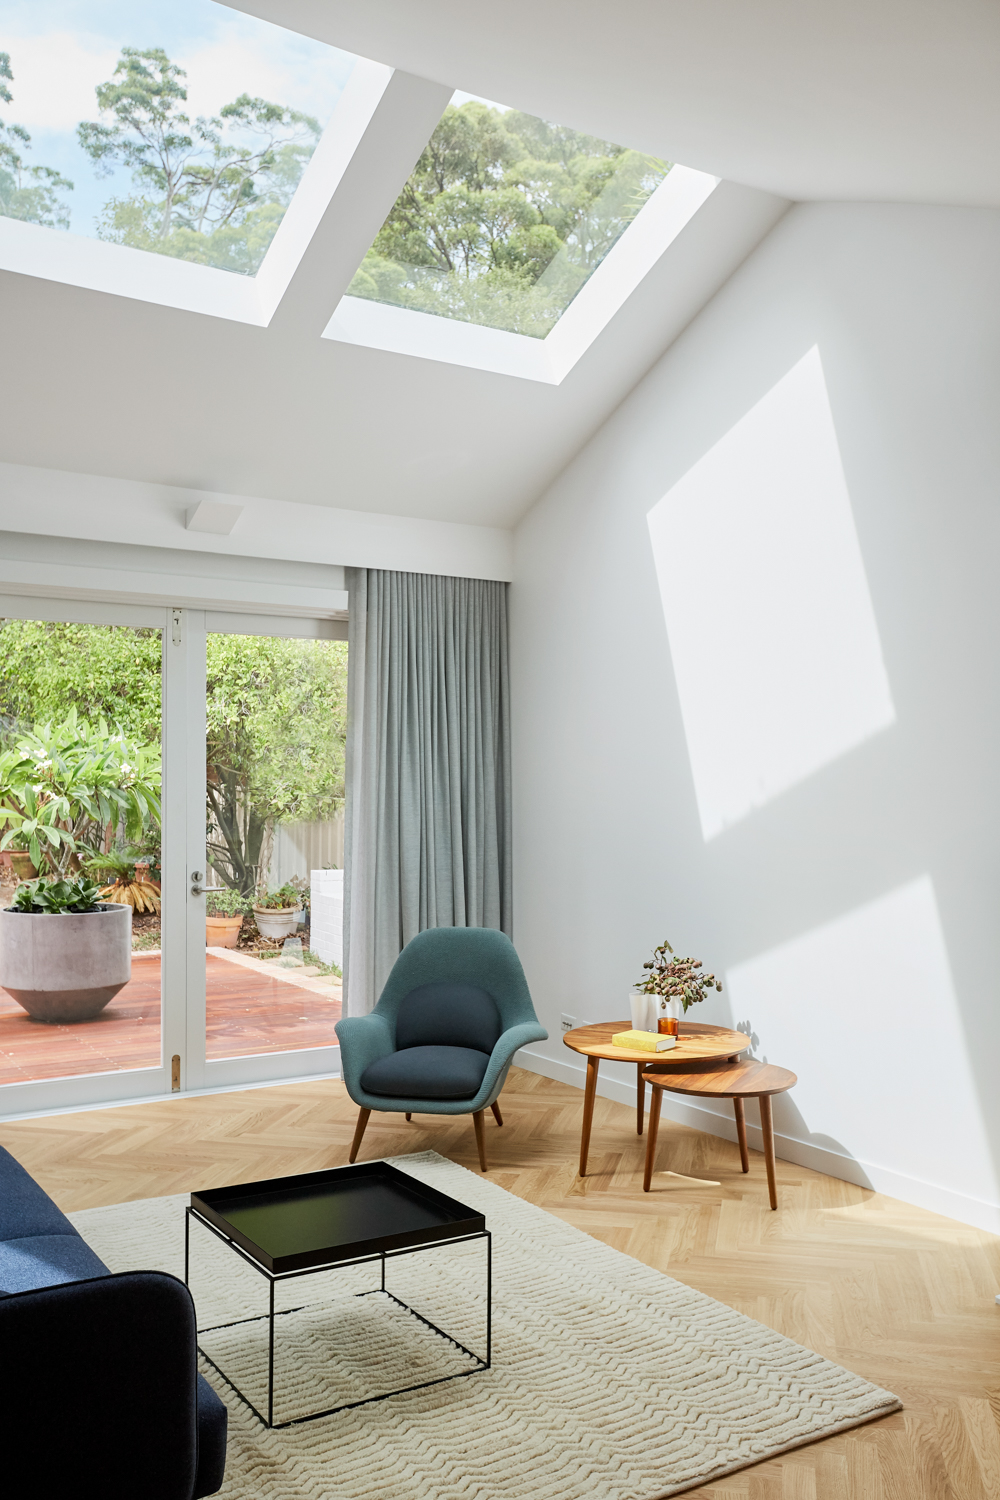 Looking at living room to outside with skylights above